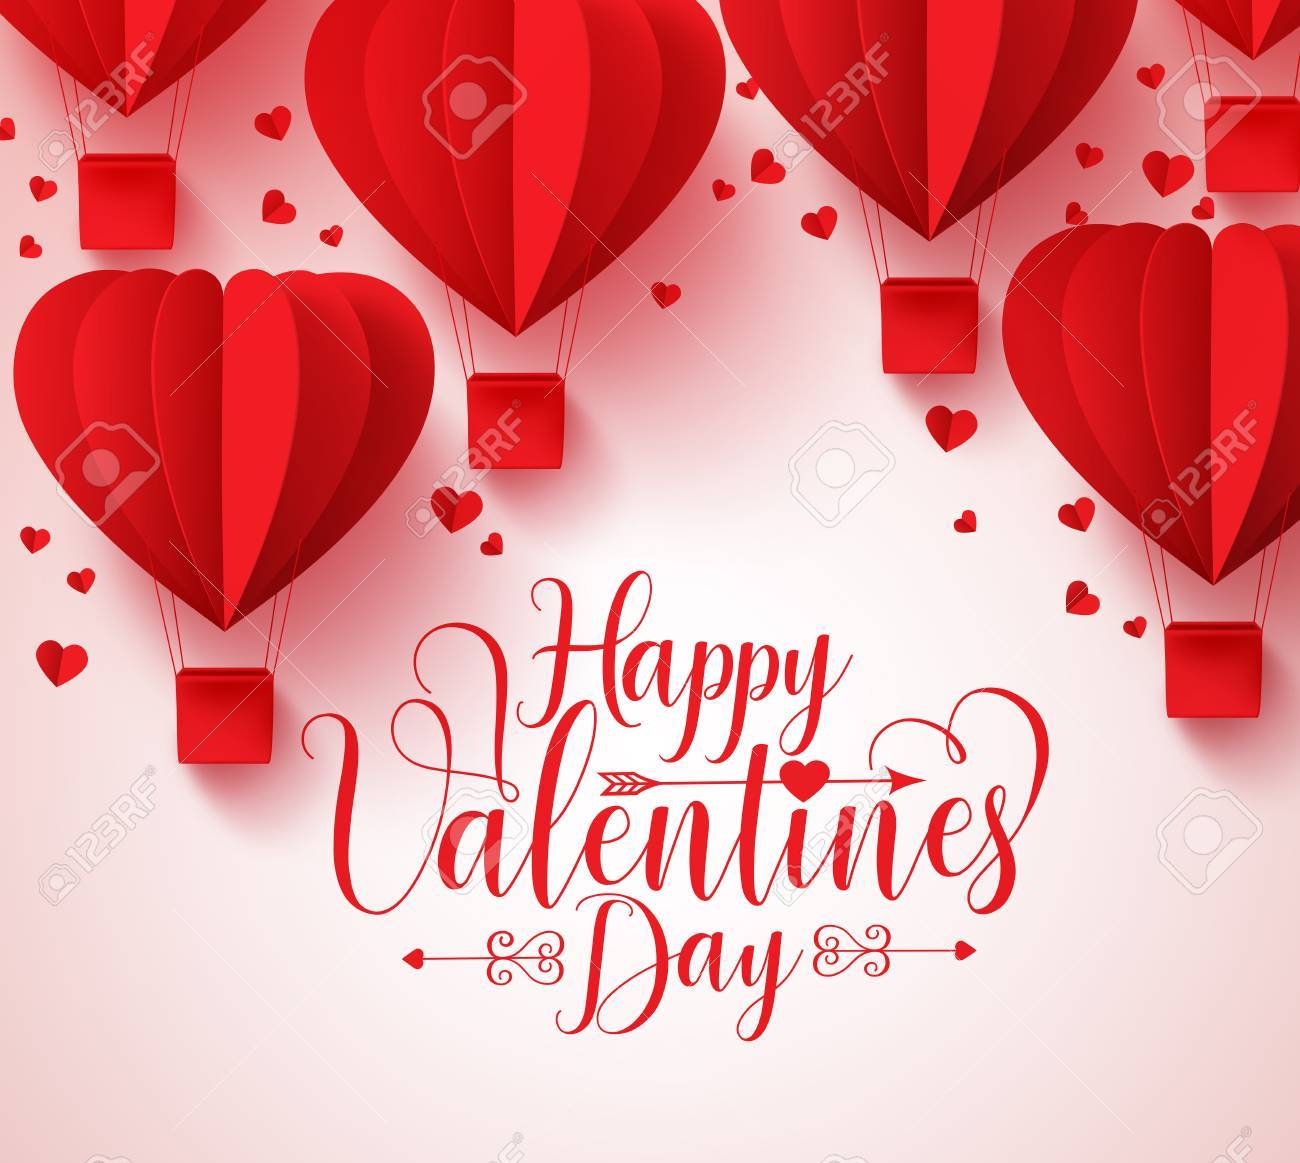 Happy valentines day vector greetings card design with paper happy valentines day vector greetings card design with paper cut red heart shape hot air balloons m4hsunfo